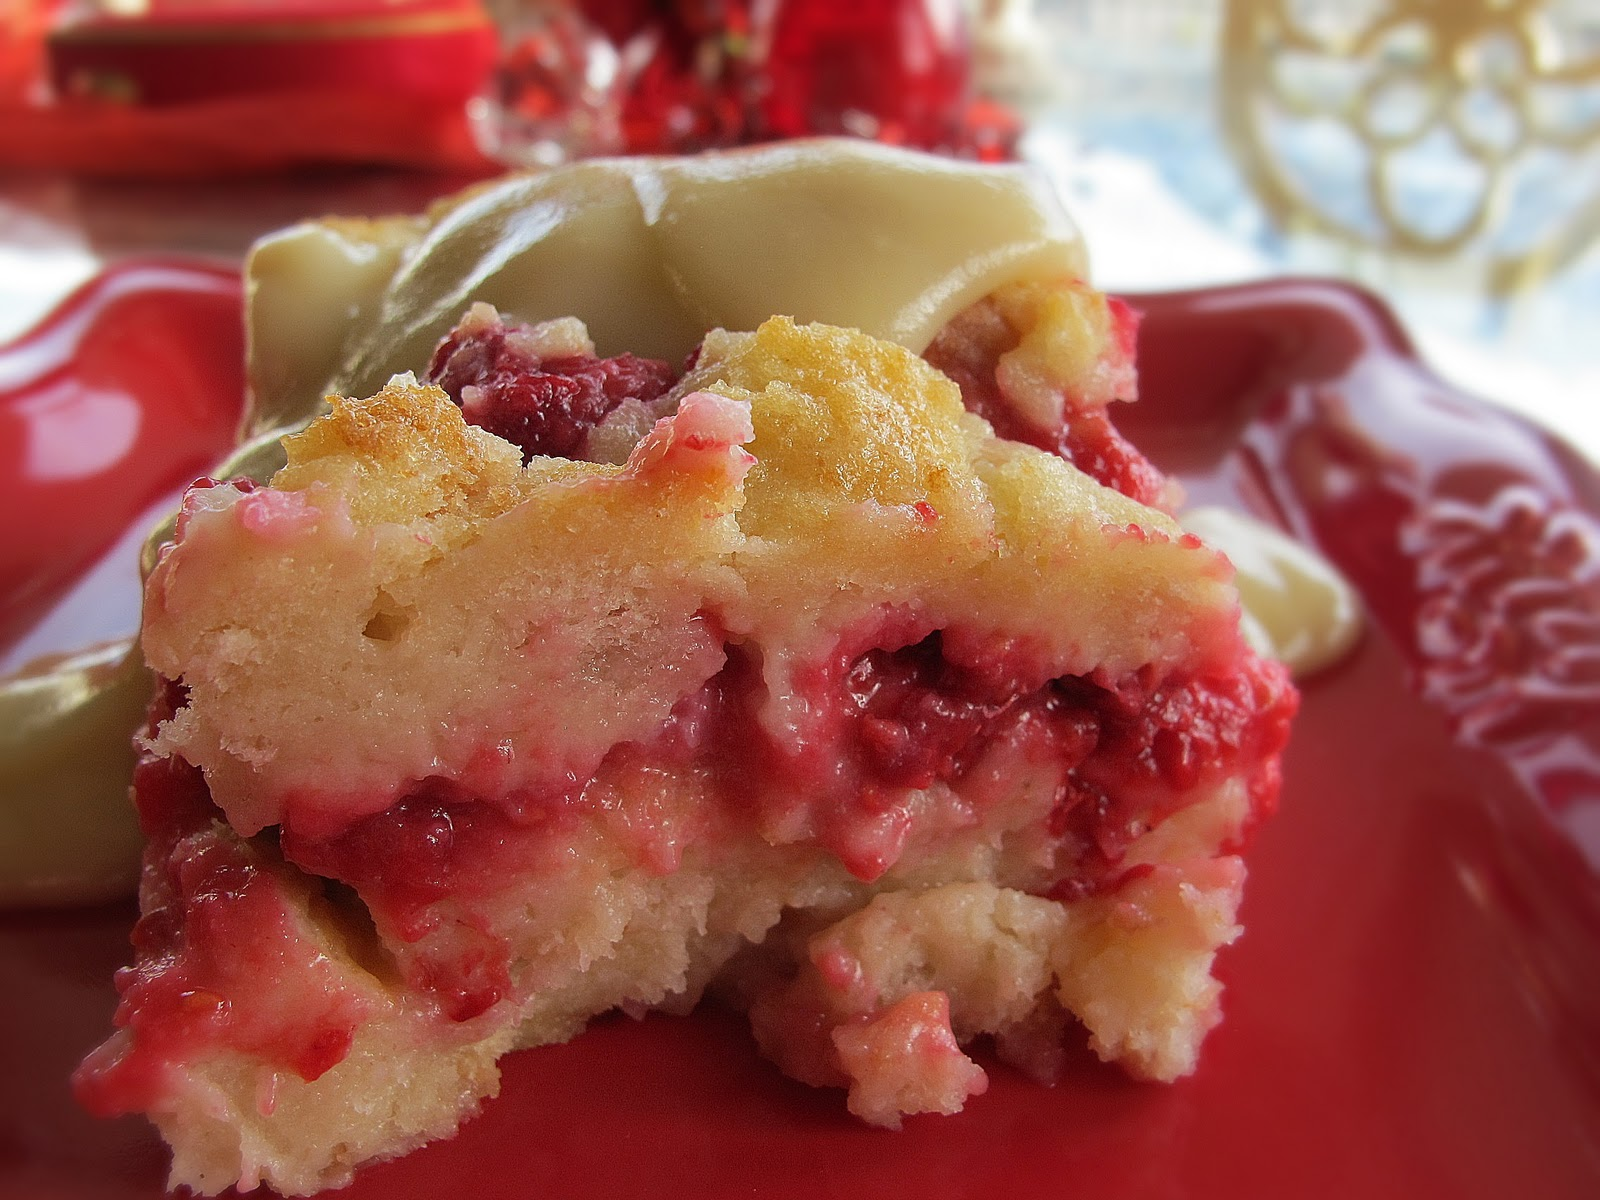 Yes, it tasted exactly like Kneader's Raspberry Bread Pudding.